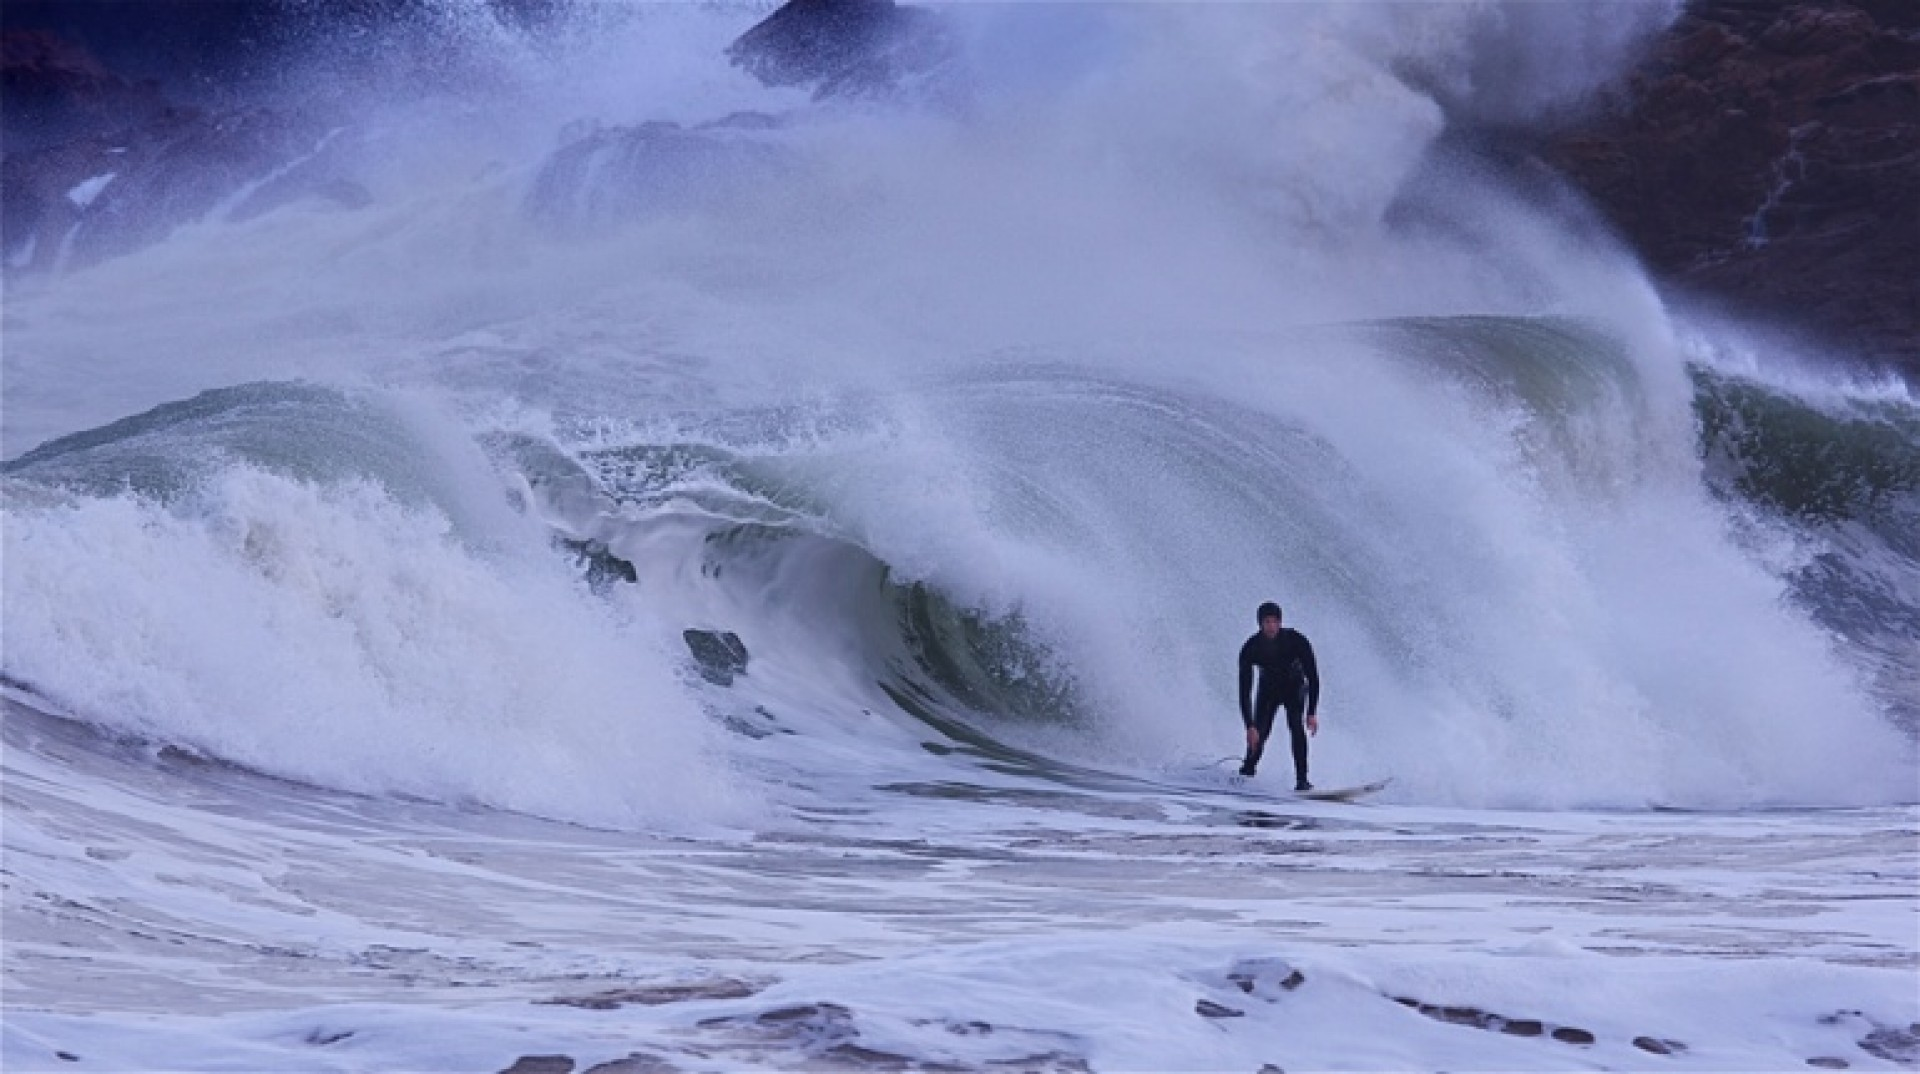 Lloyd Letherbarrow's photo of Jersey